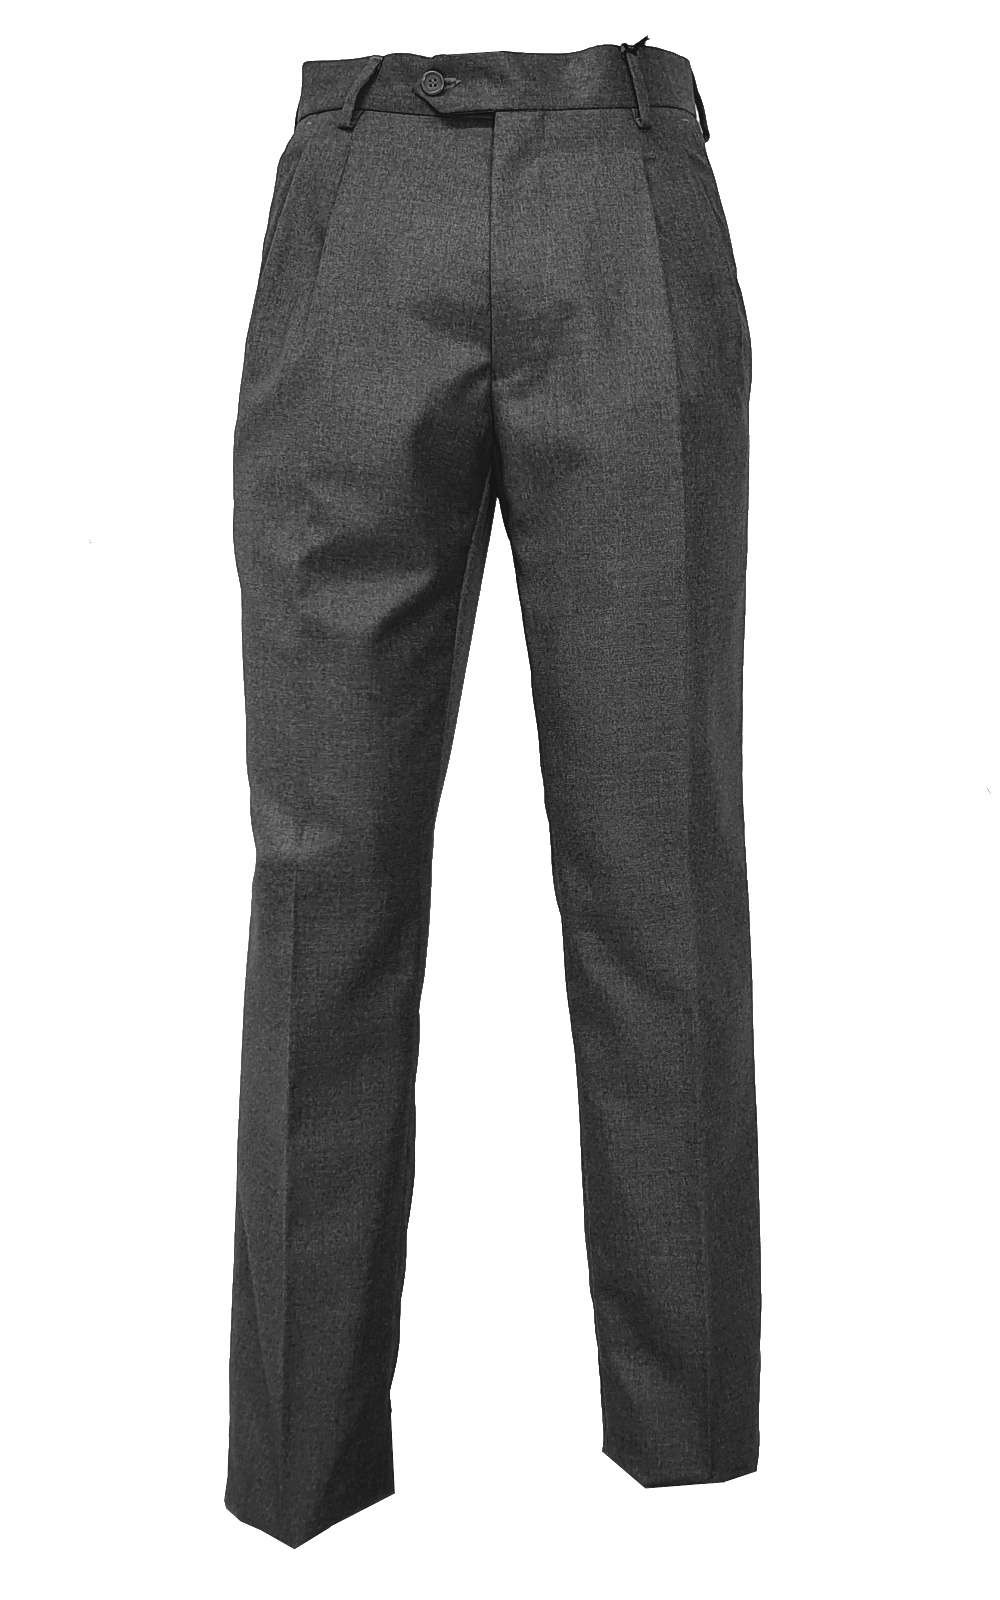 Pantalone Classico Lana Due Pinces Vigogna Made In Italy Tasca America 46 a 62